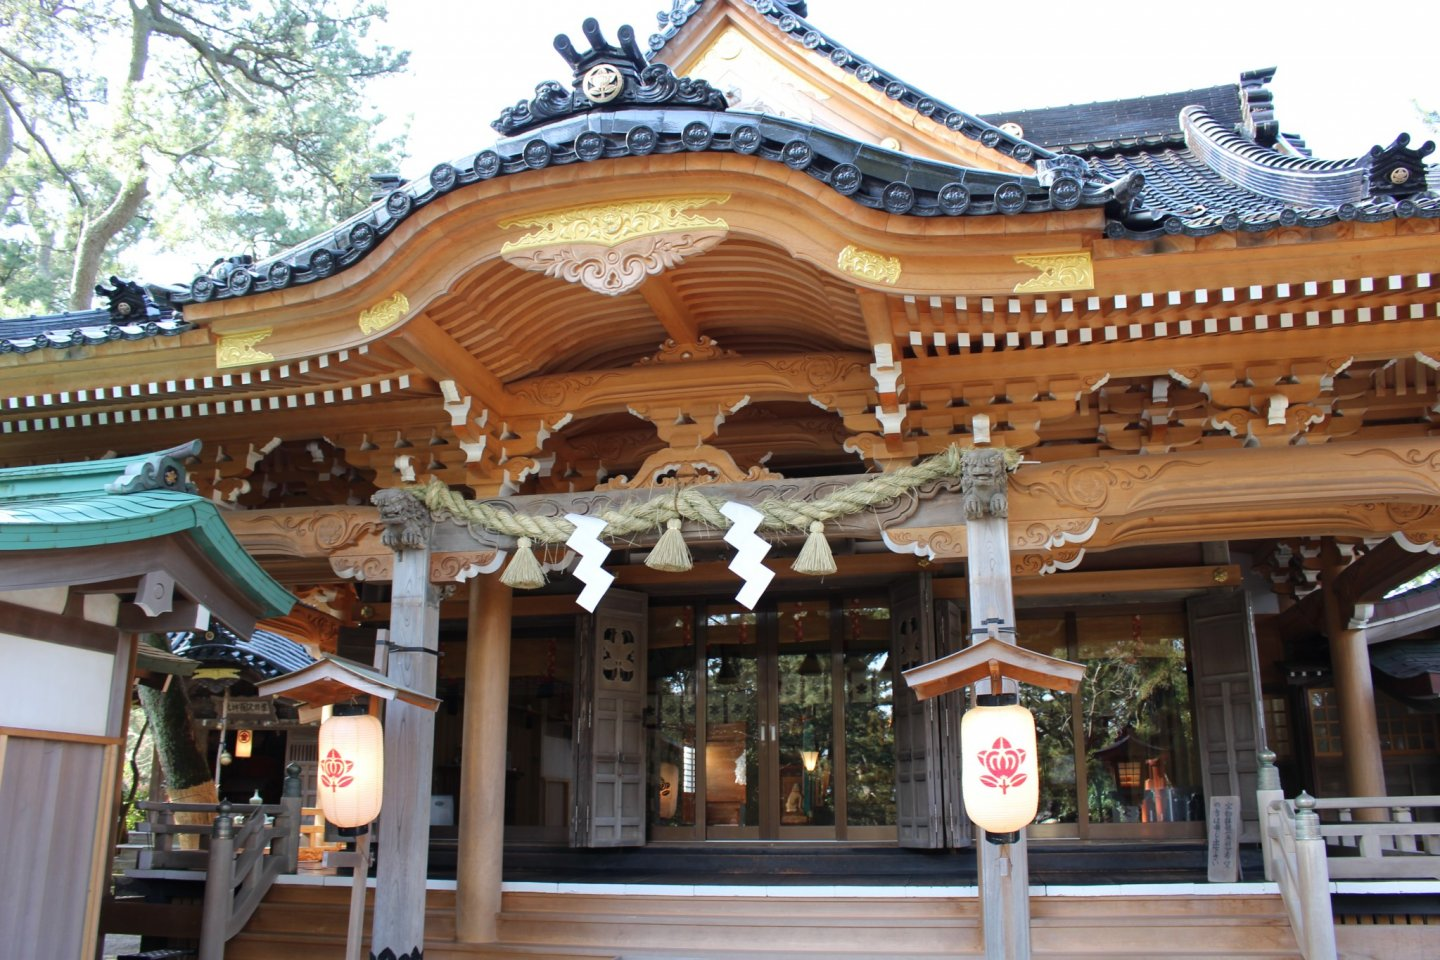 Atsuta Shrine in Kaga